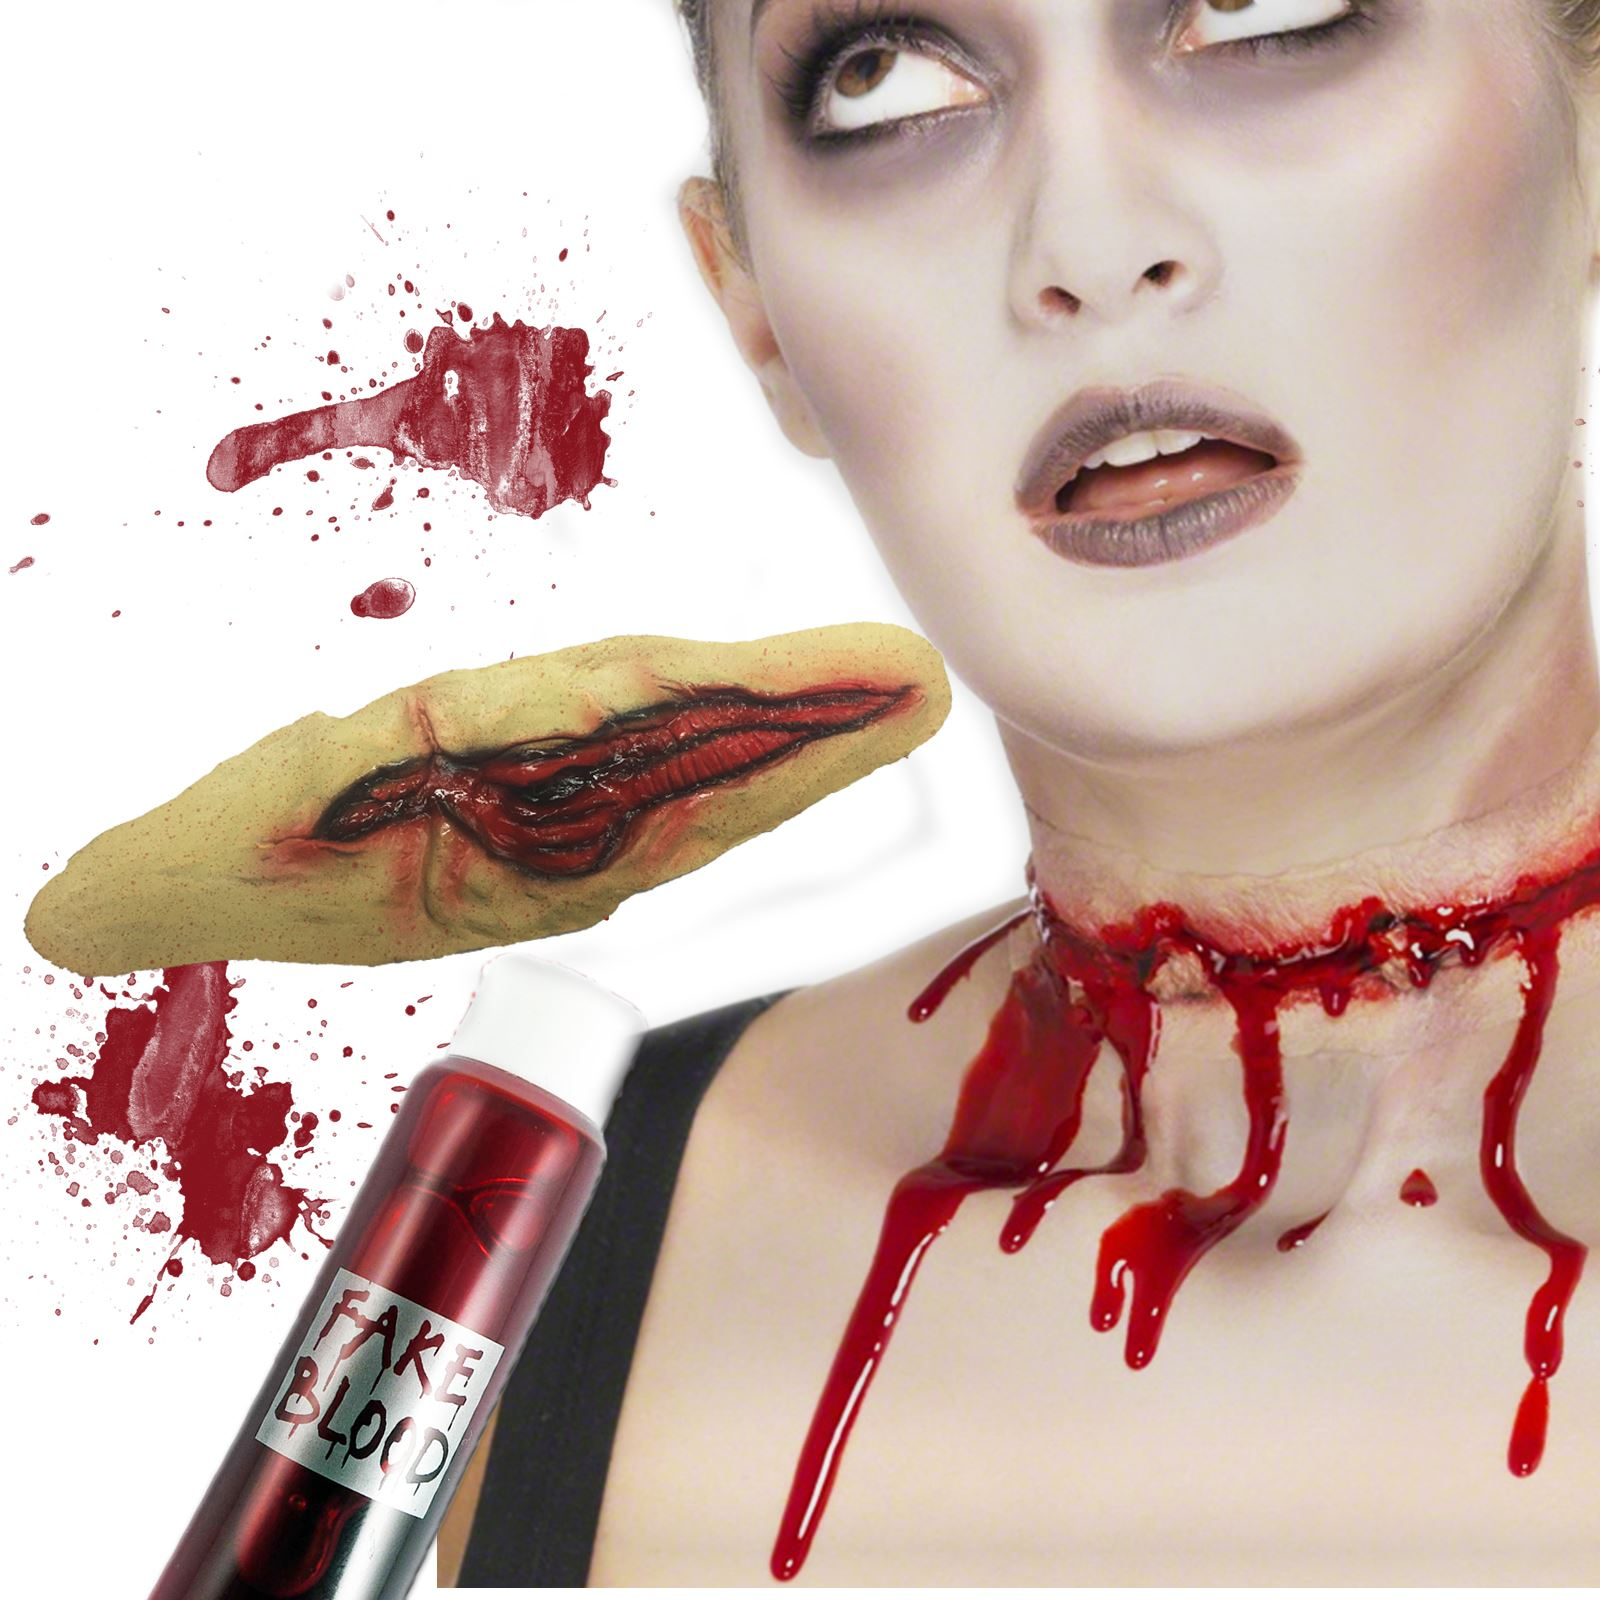 SLASHED THROAT HALLOWEEN FX ZOMBIE MAKE UP BLOOD FACE PAINT FANCY ...